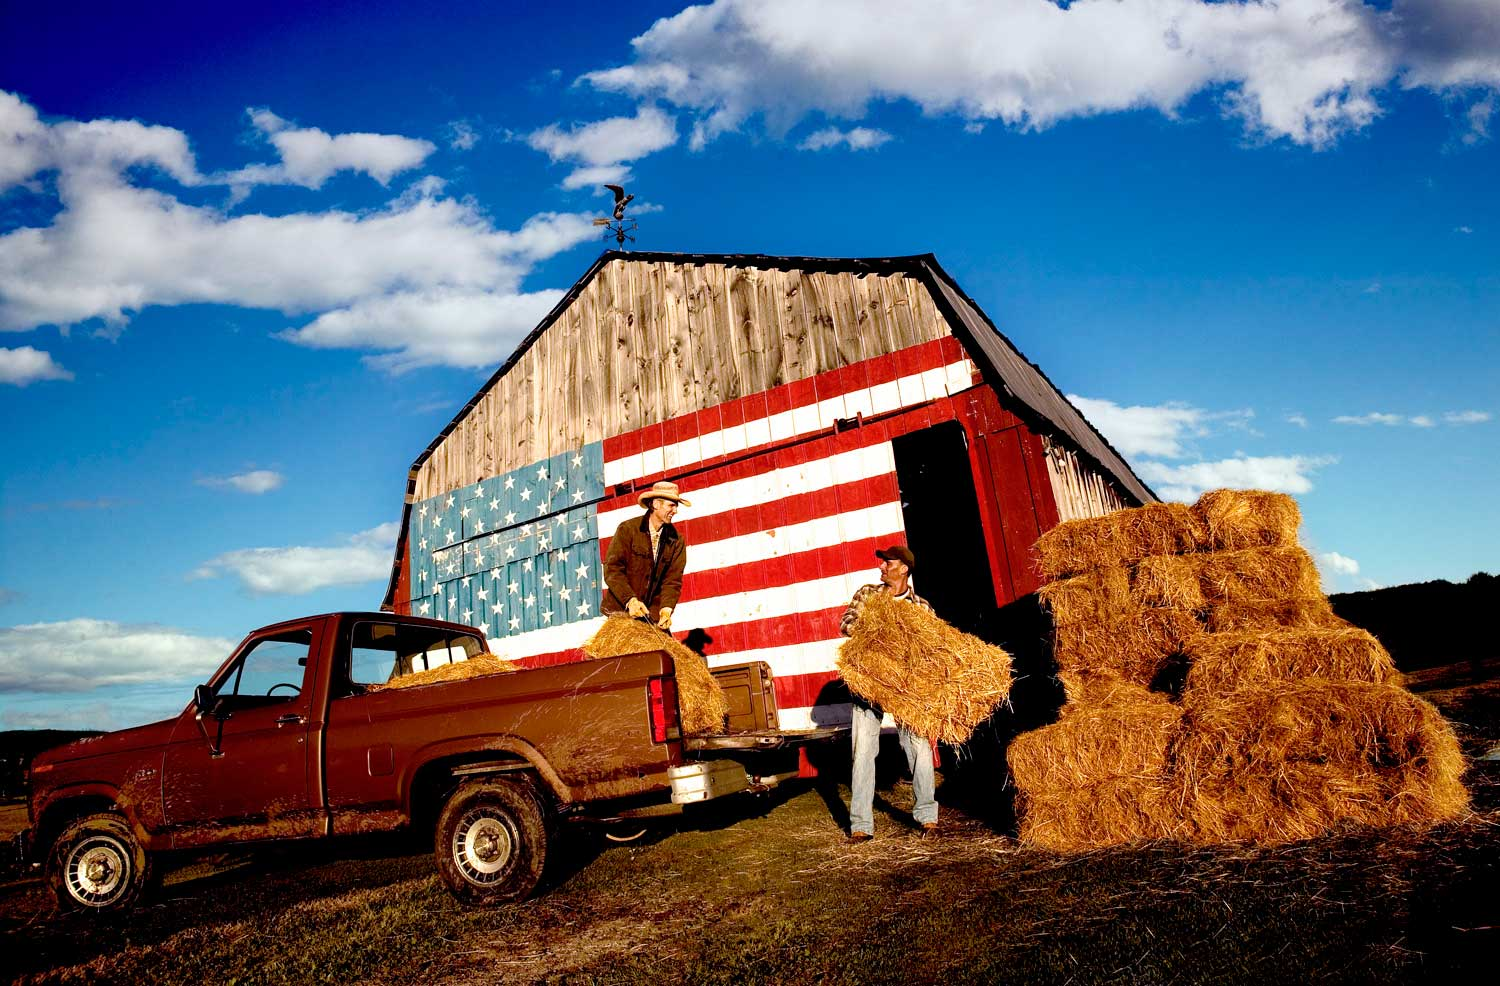 Skoal_Flag-farmers pitching haybales onto pickup truck